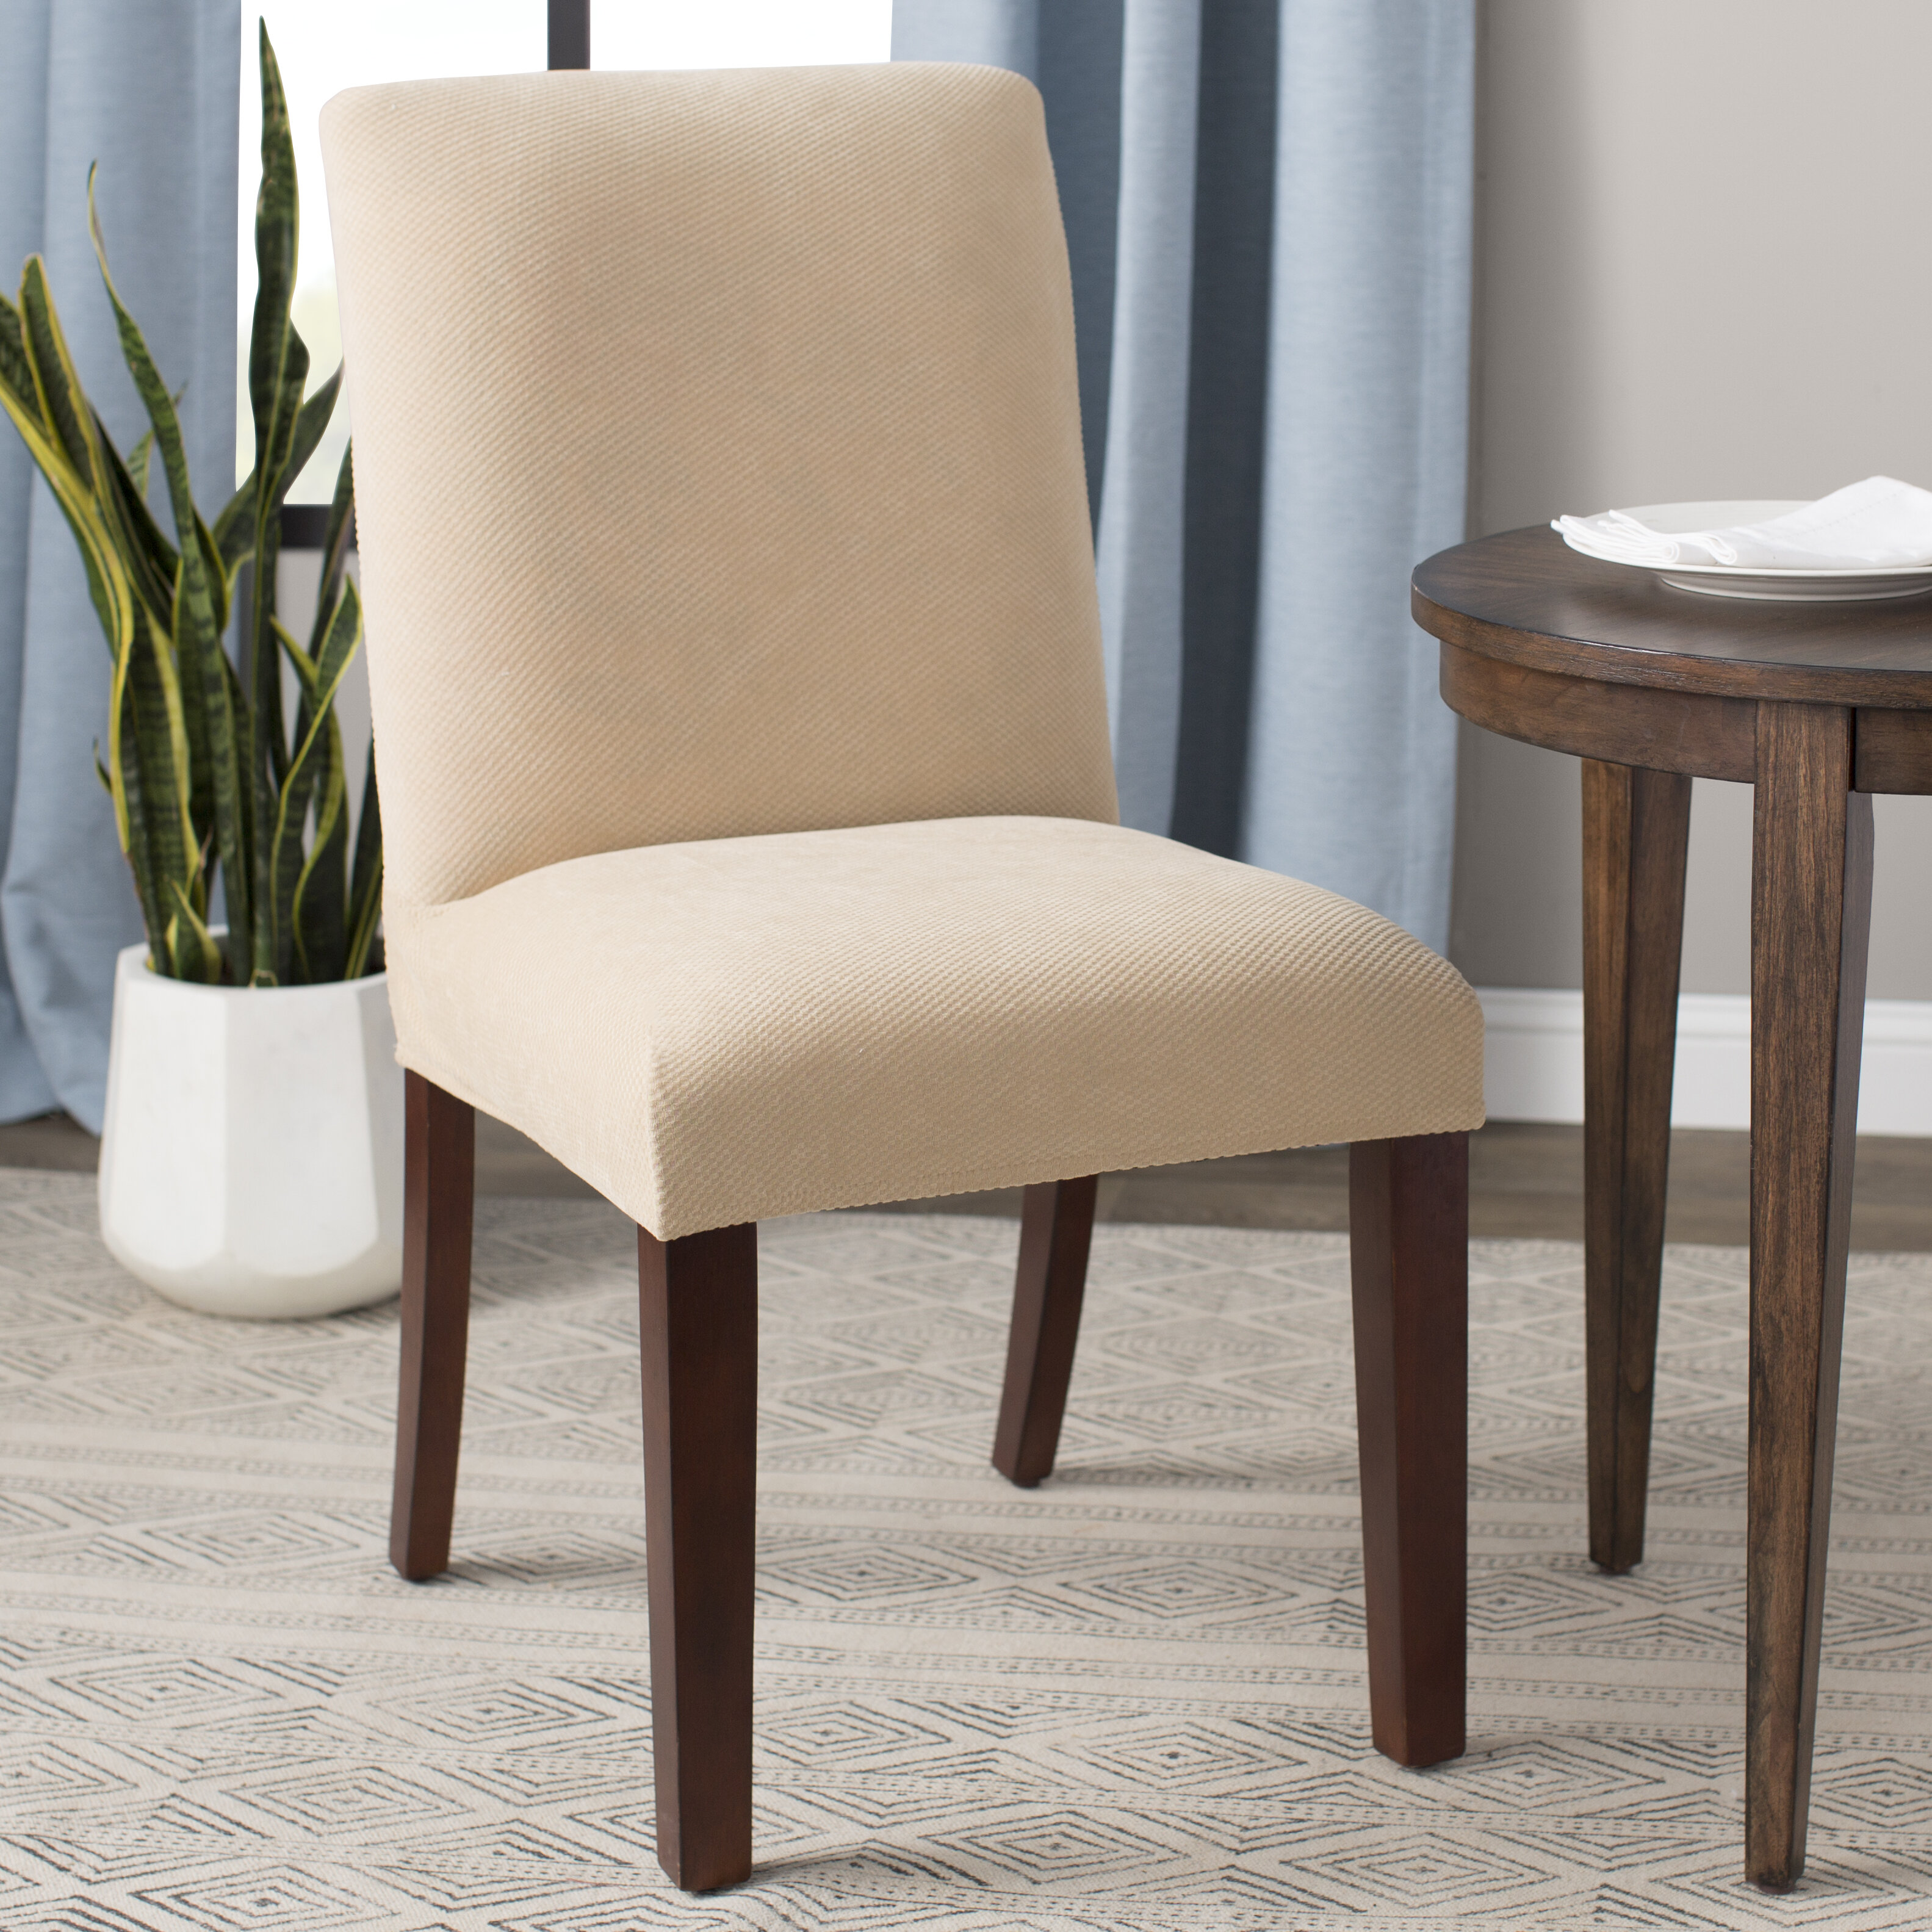 dining chair covers - HD3166×3166